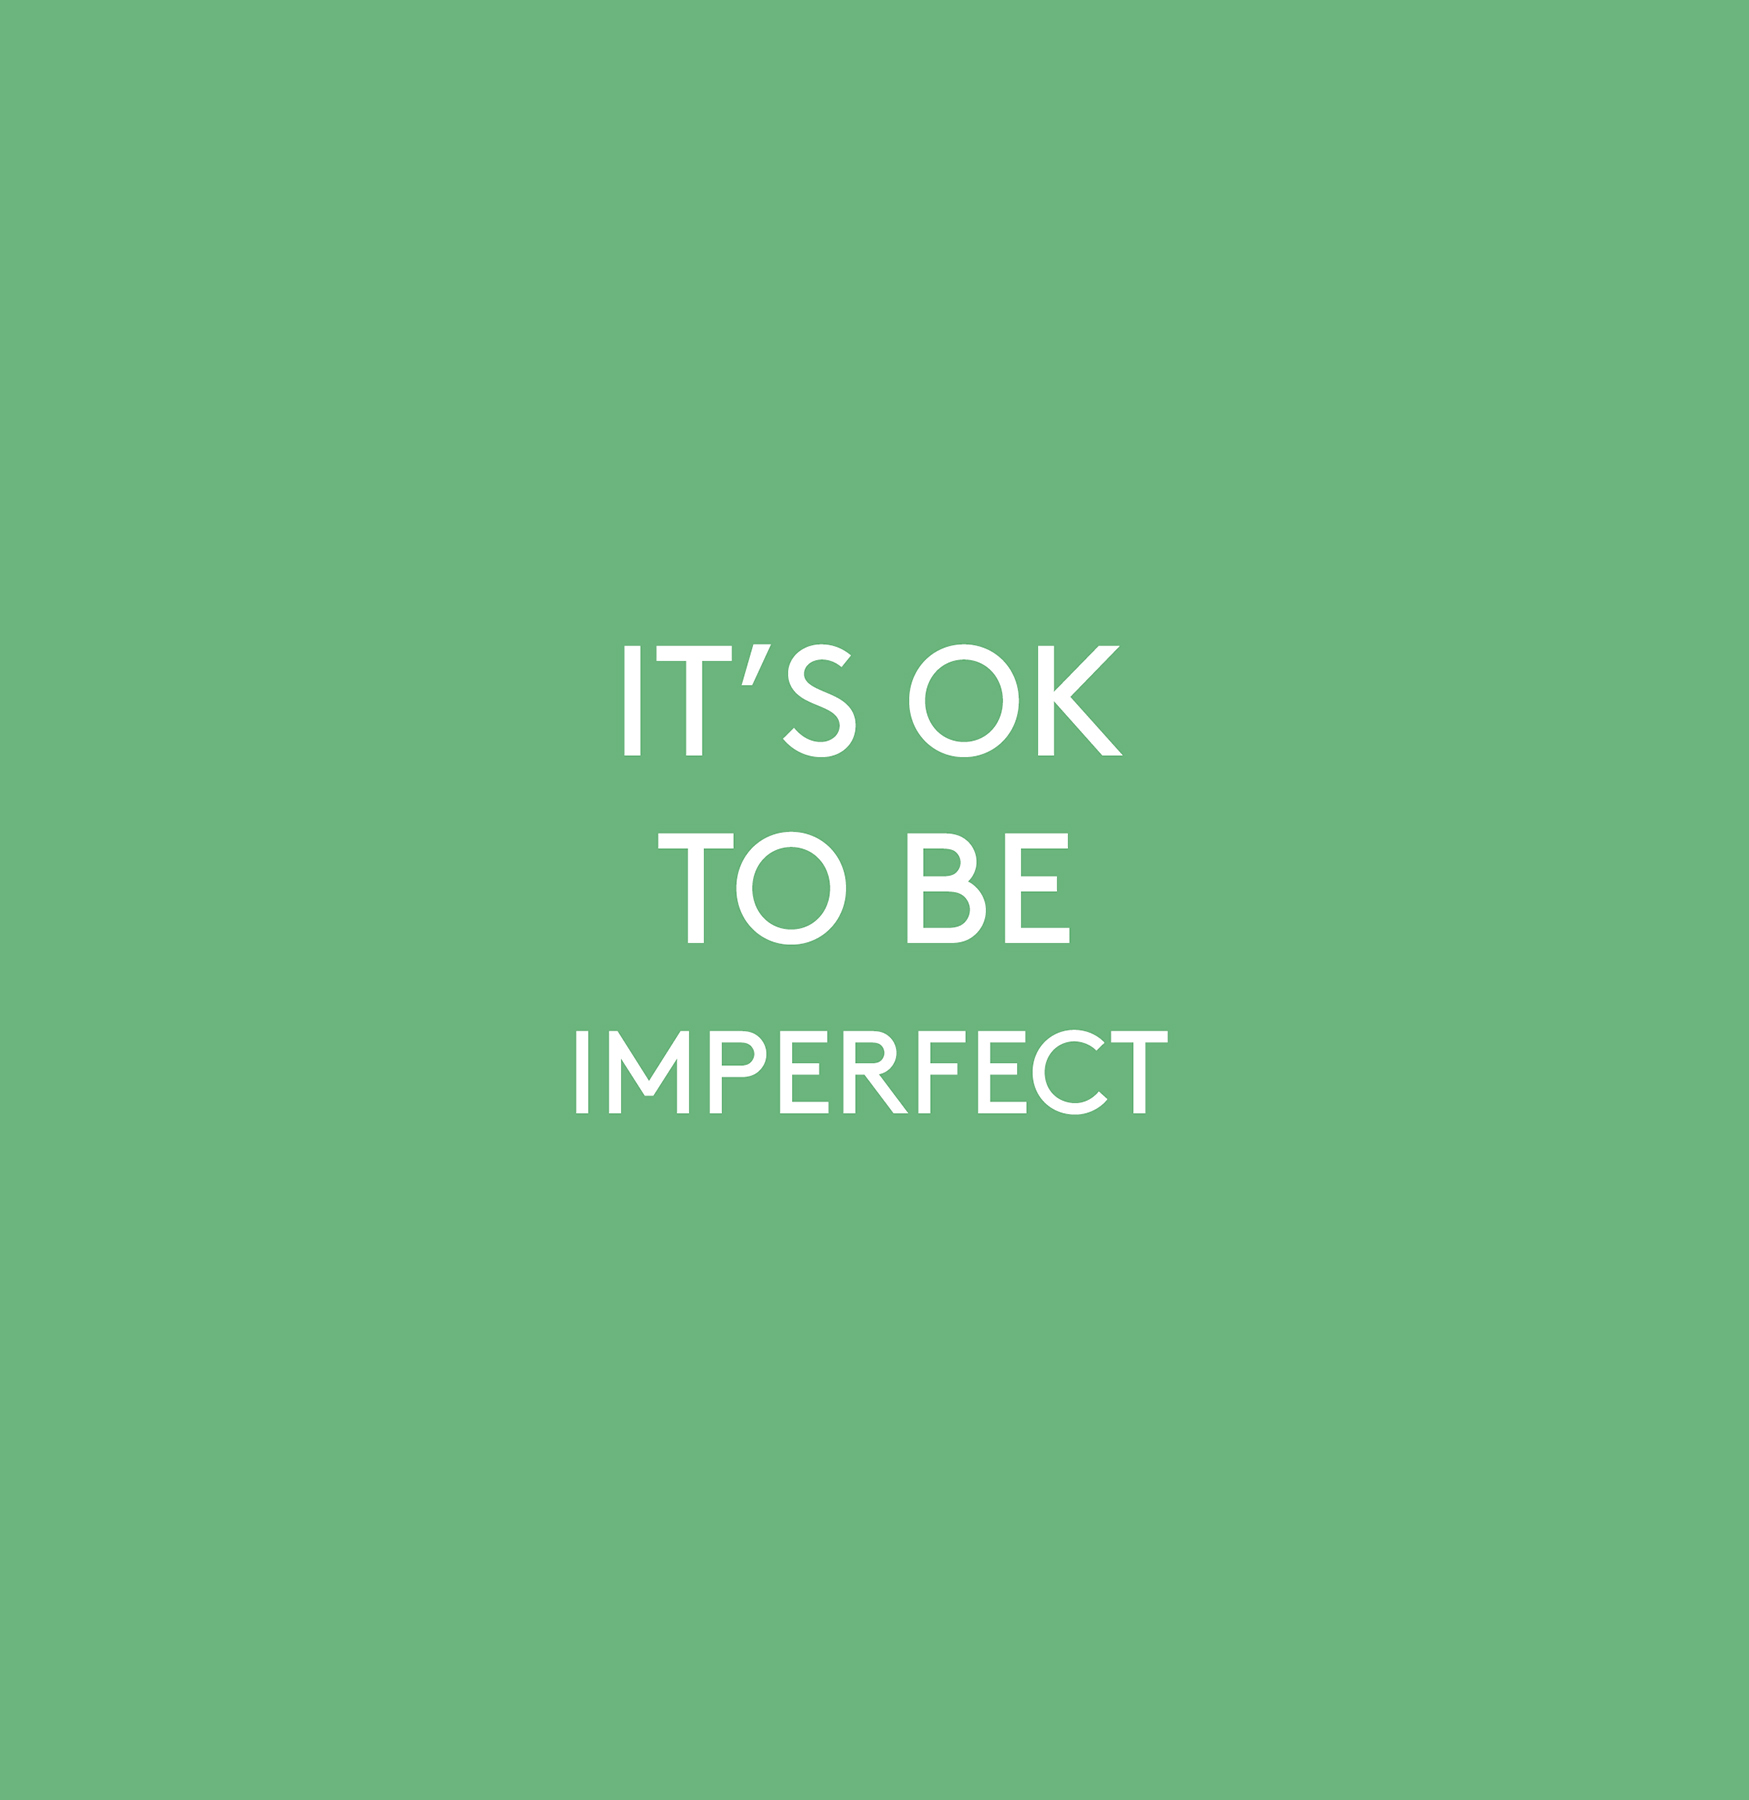 It's OK to Have an Imperfect Marriage